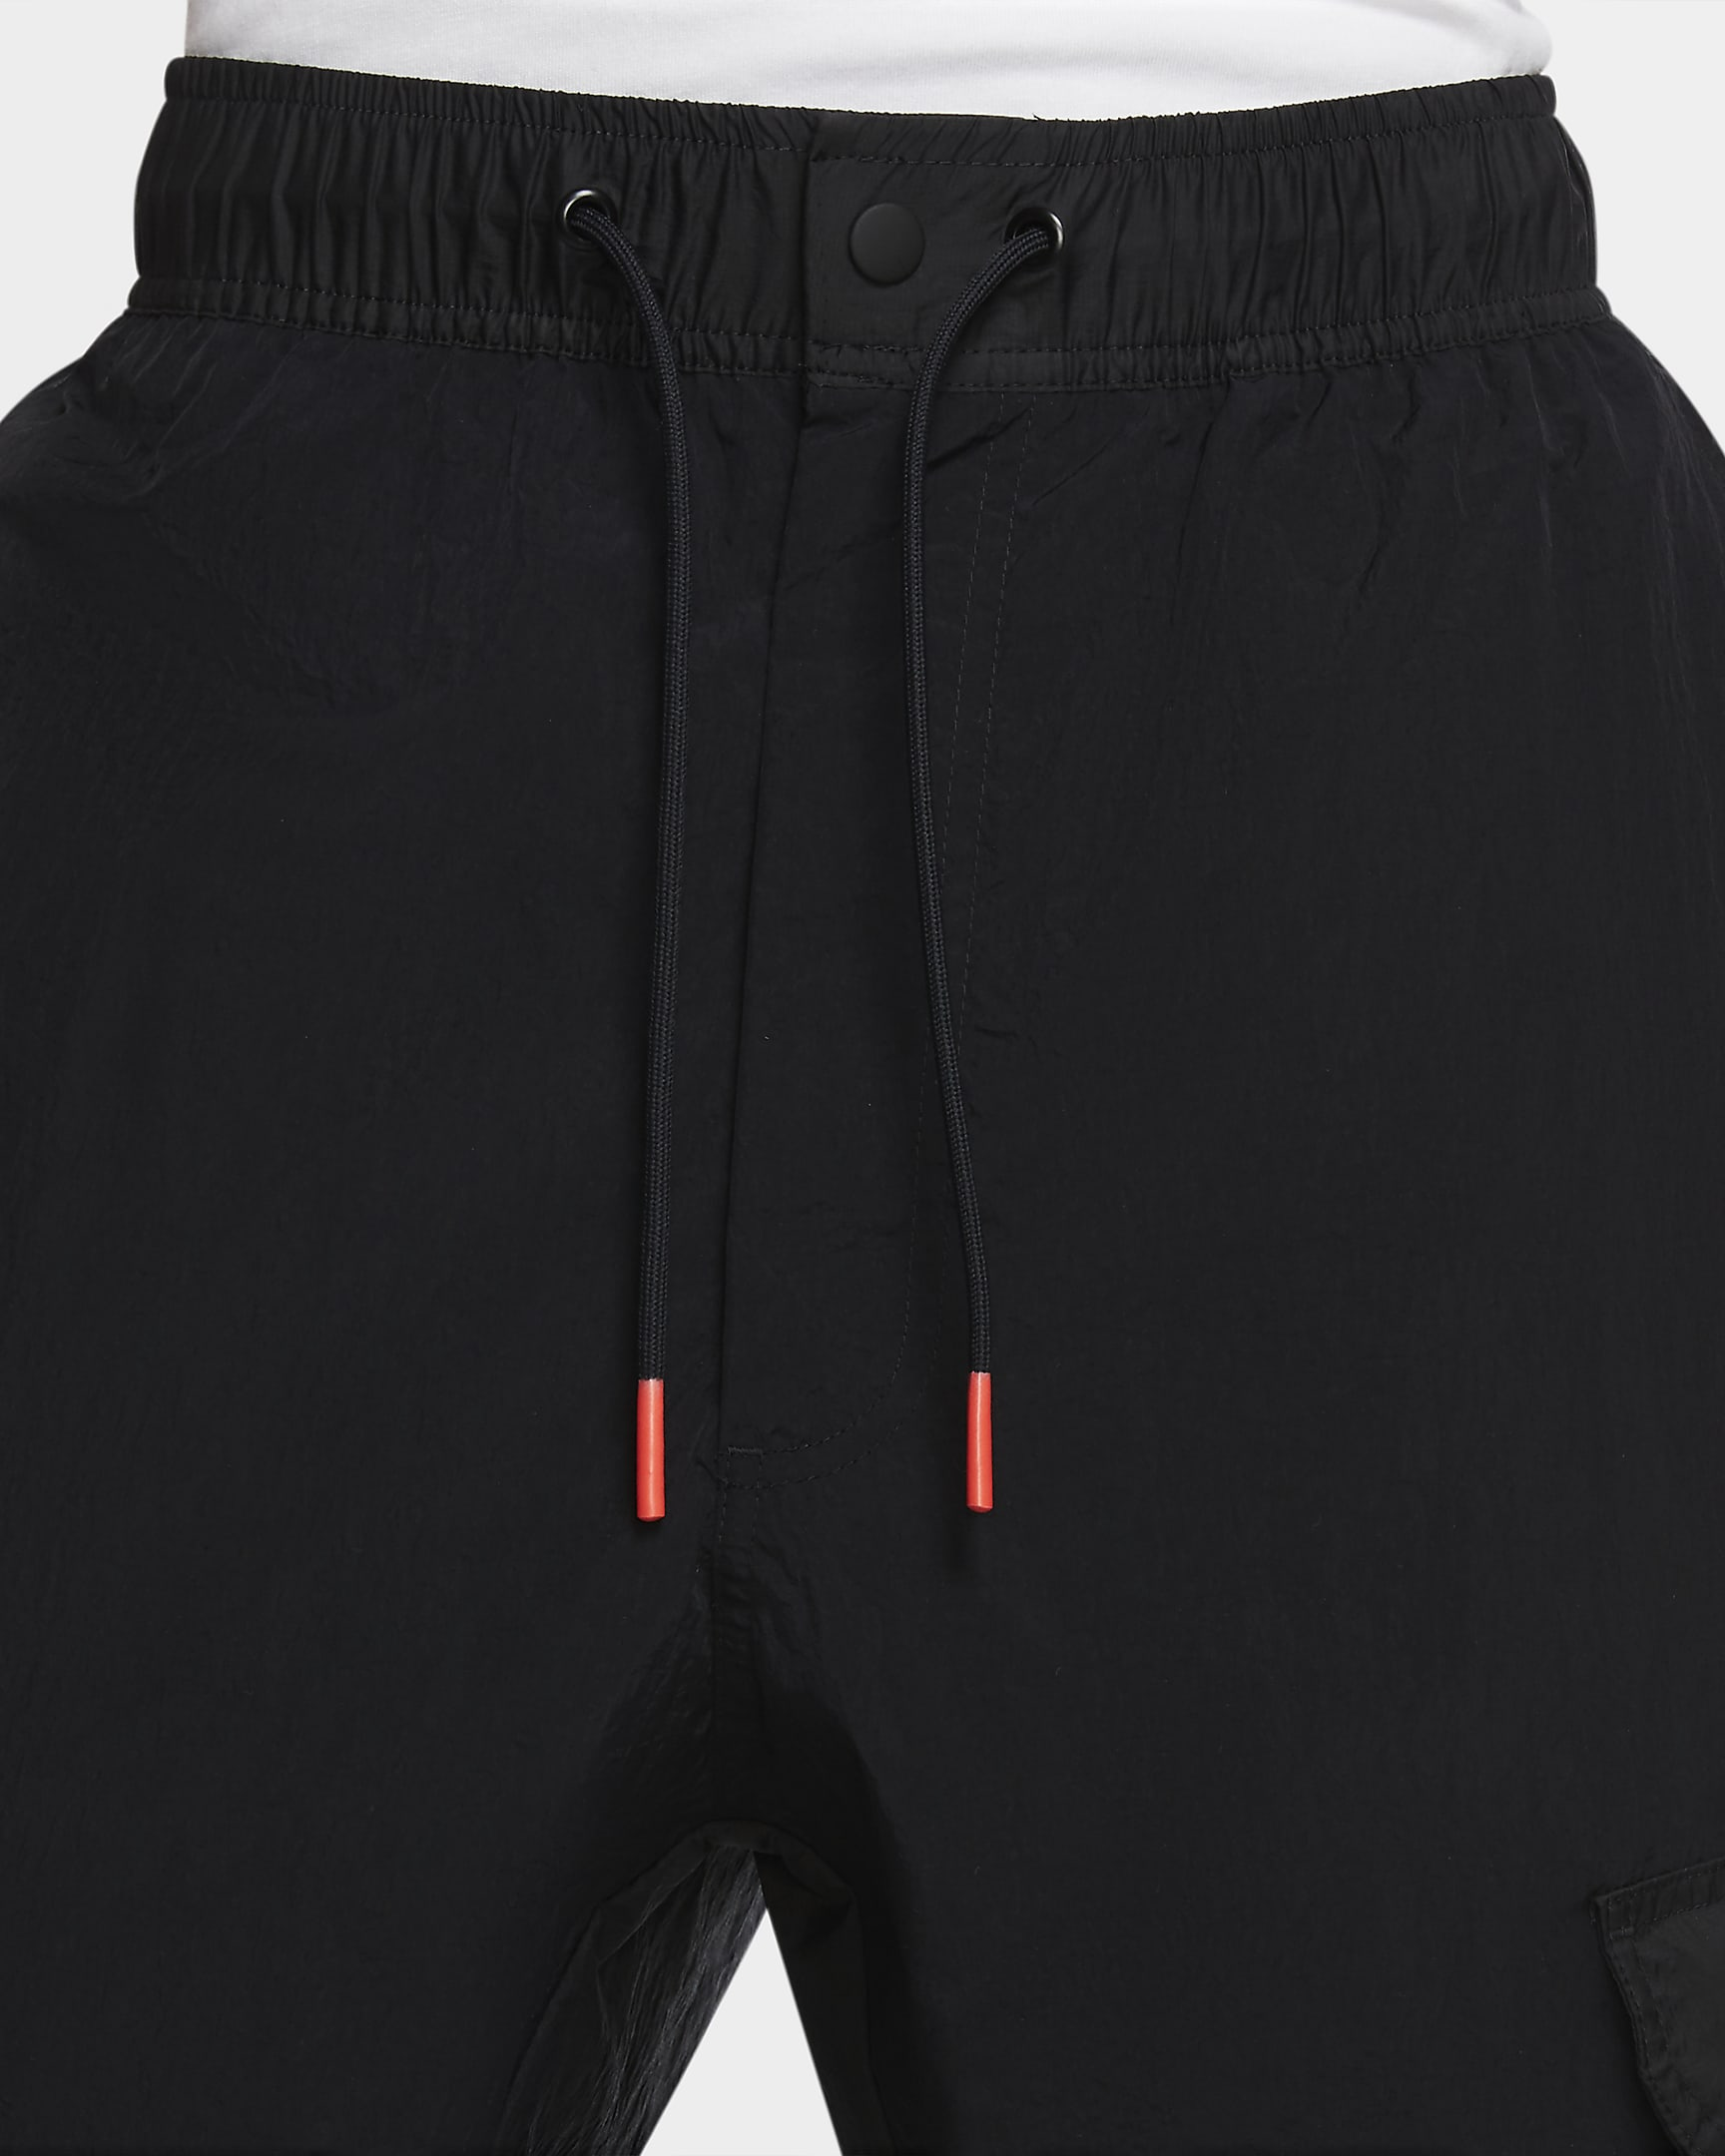 jordan-23-engineered-mens-cargo-pants-HtXMBm-1